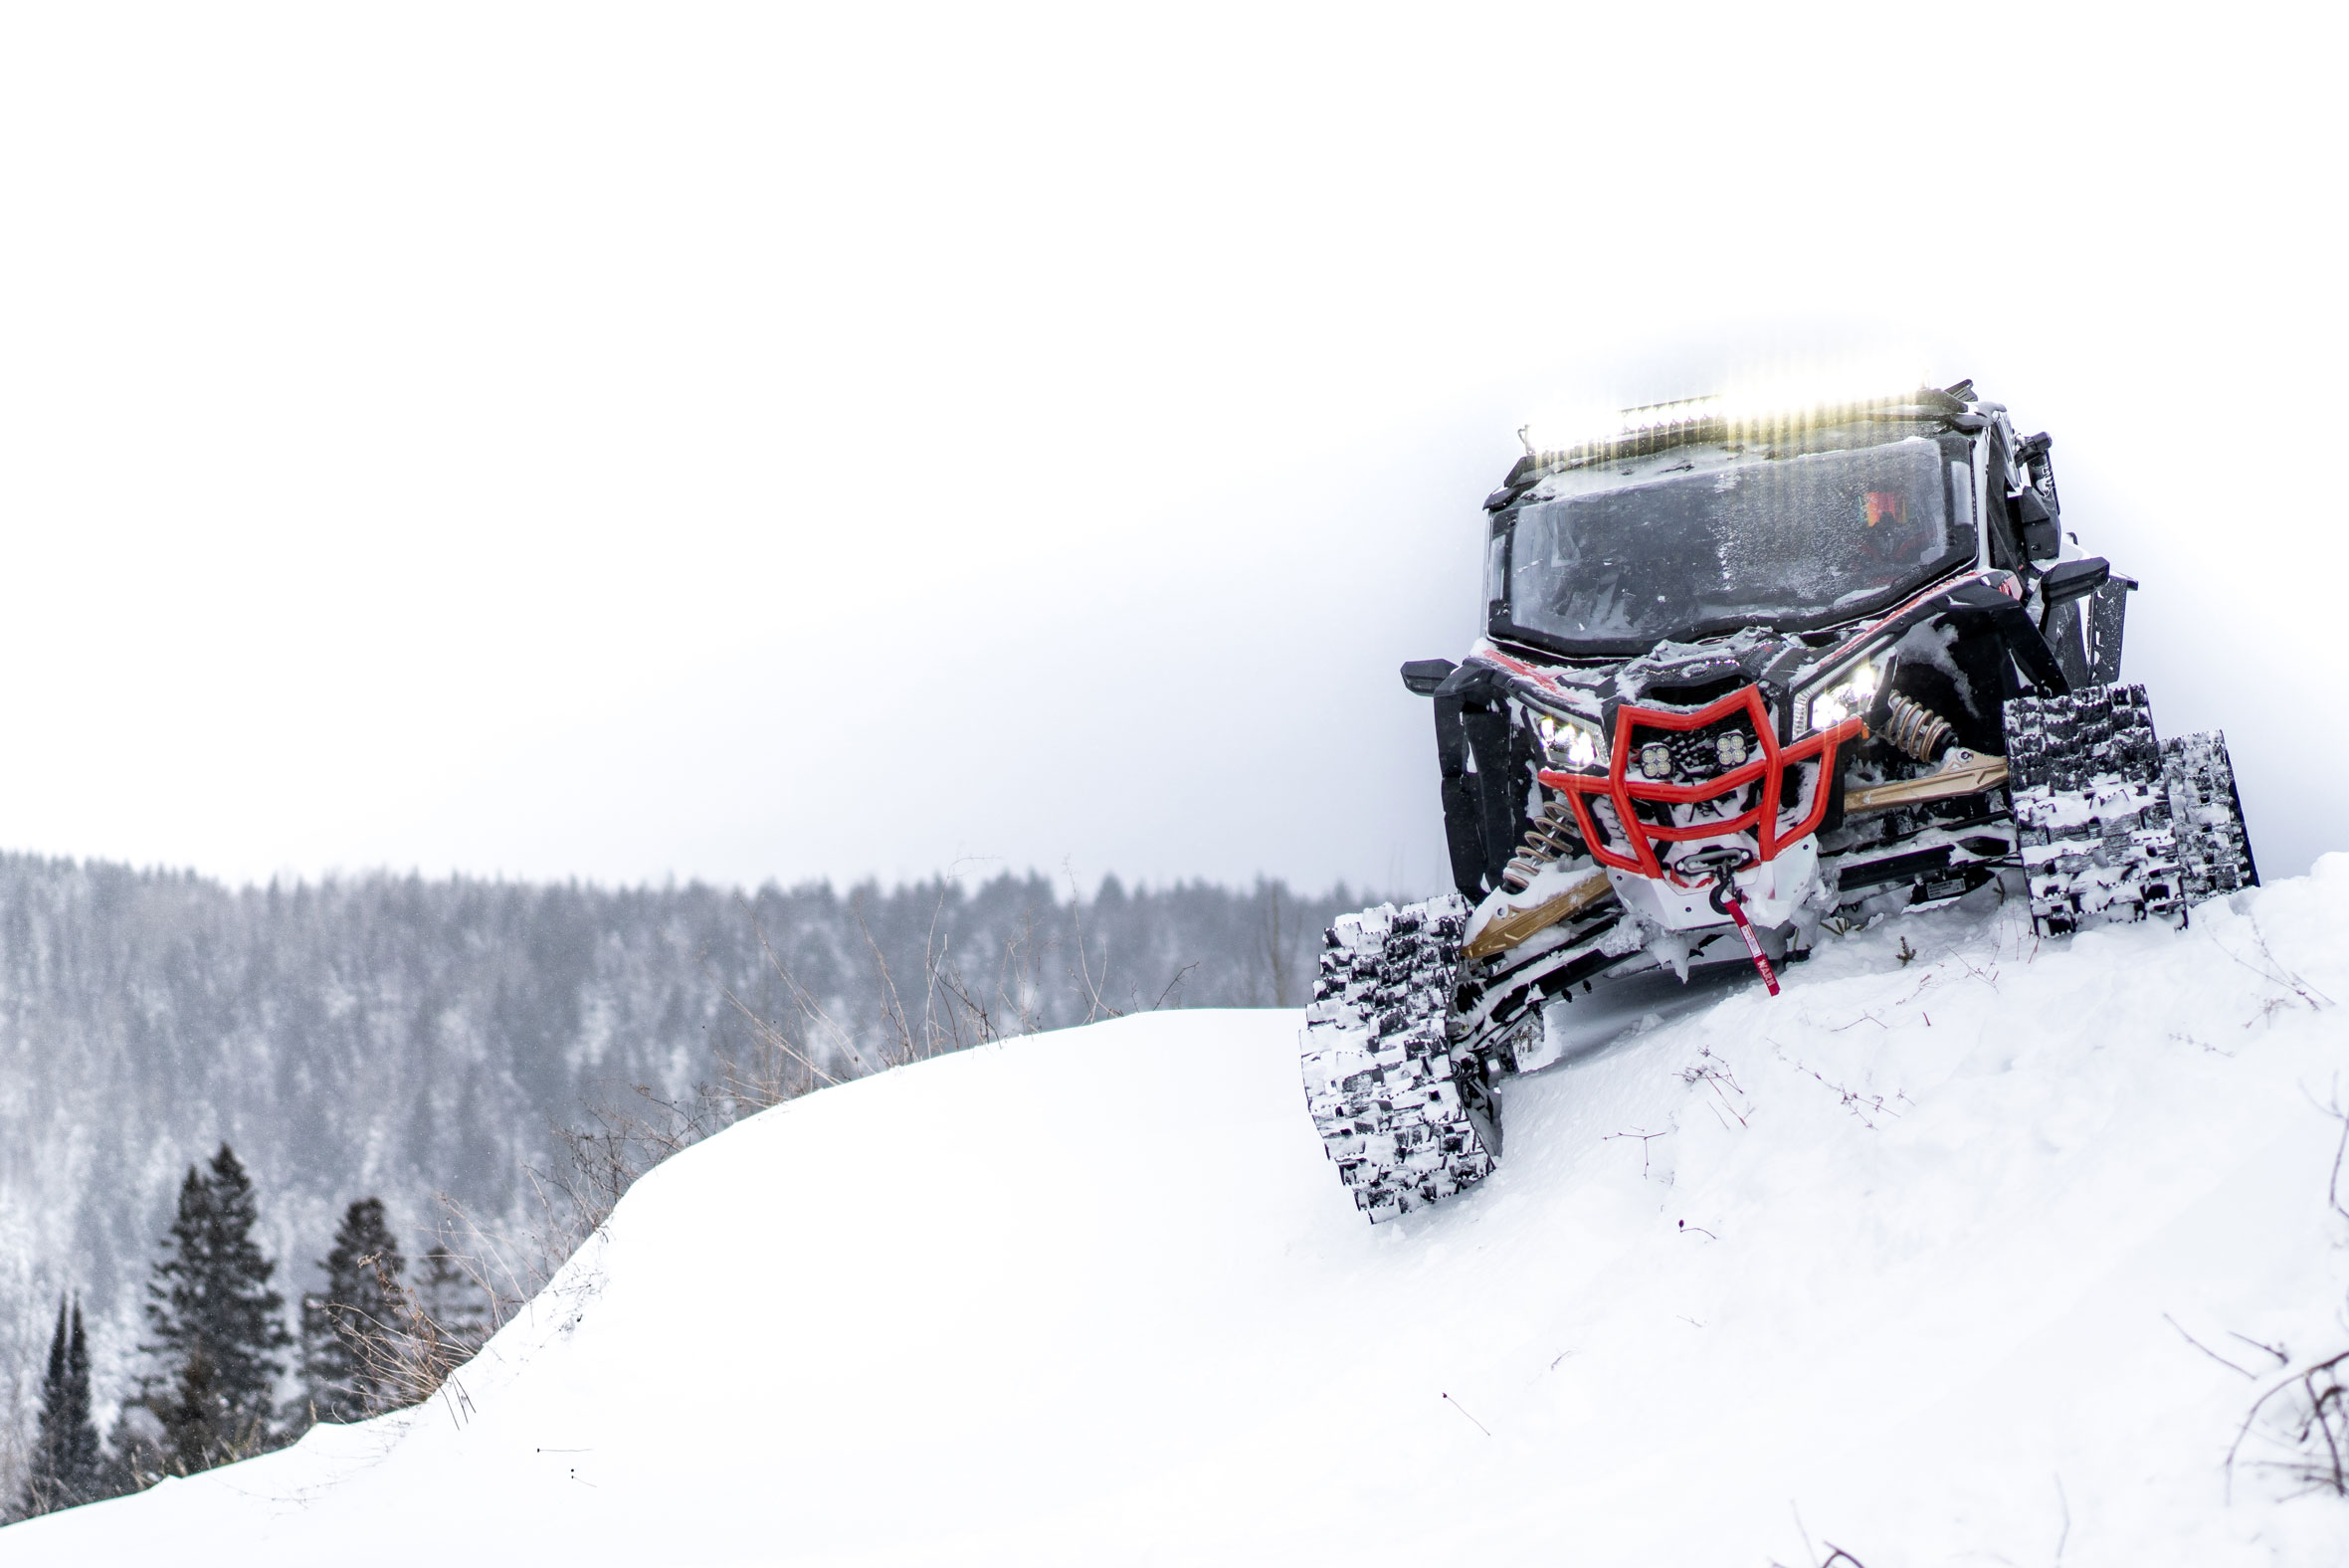 Exploring snowy mountains in a side-by-side vehicle